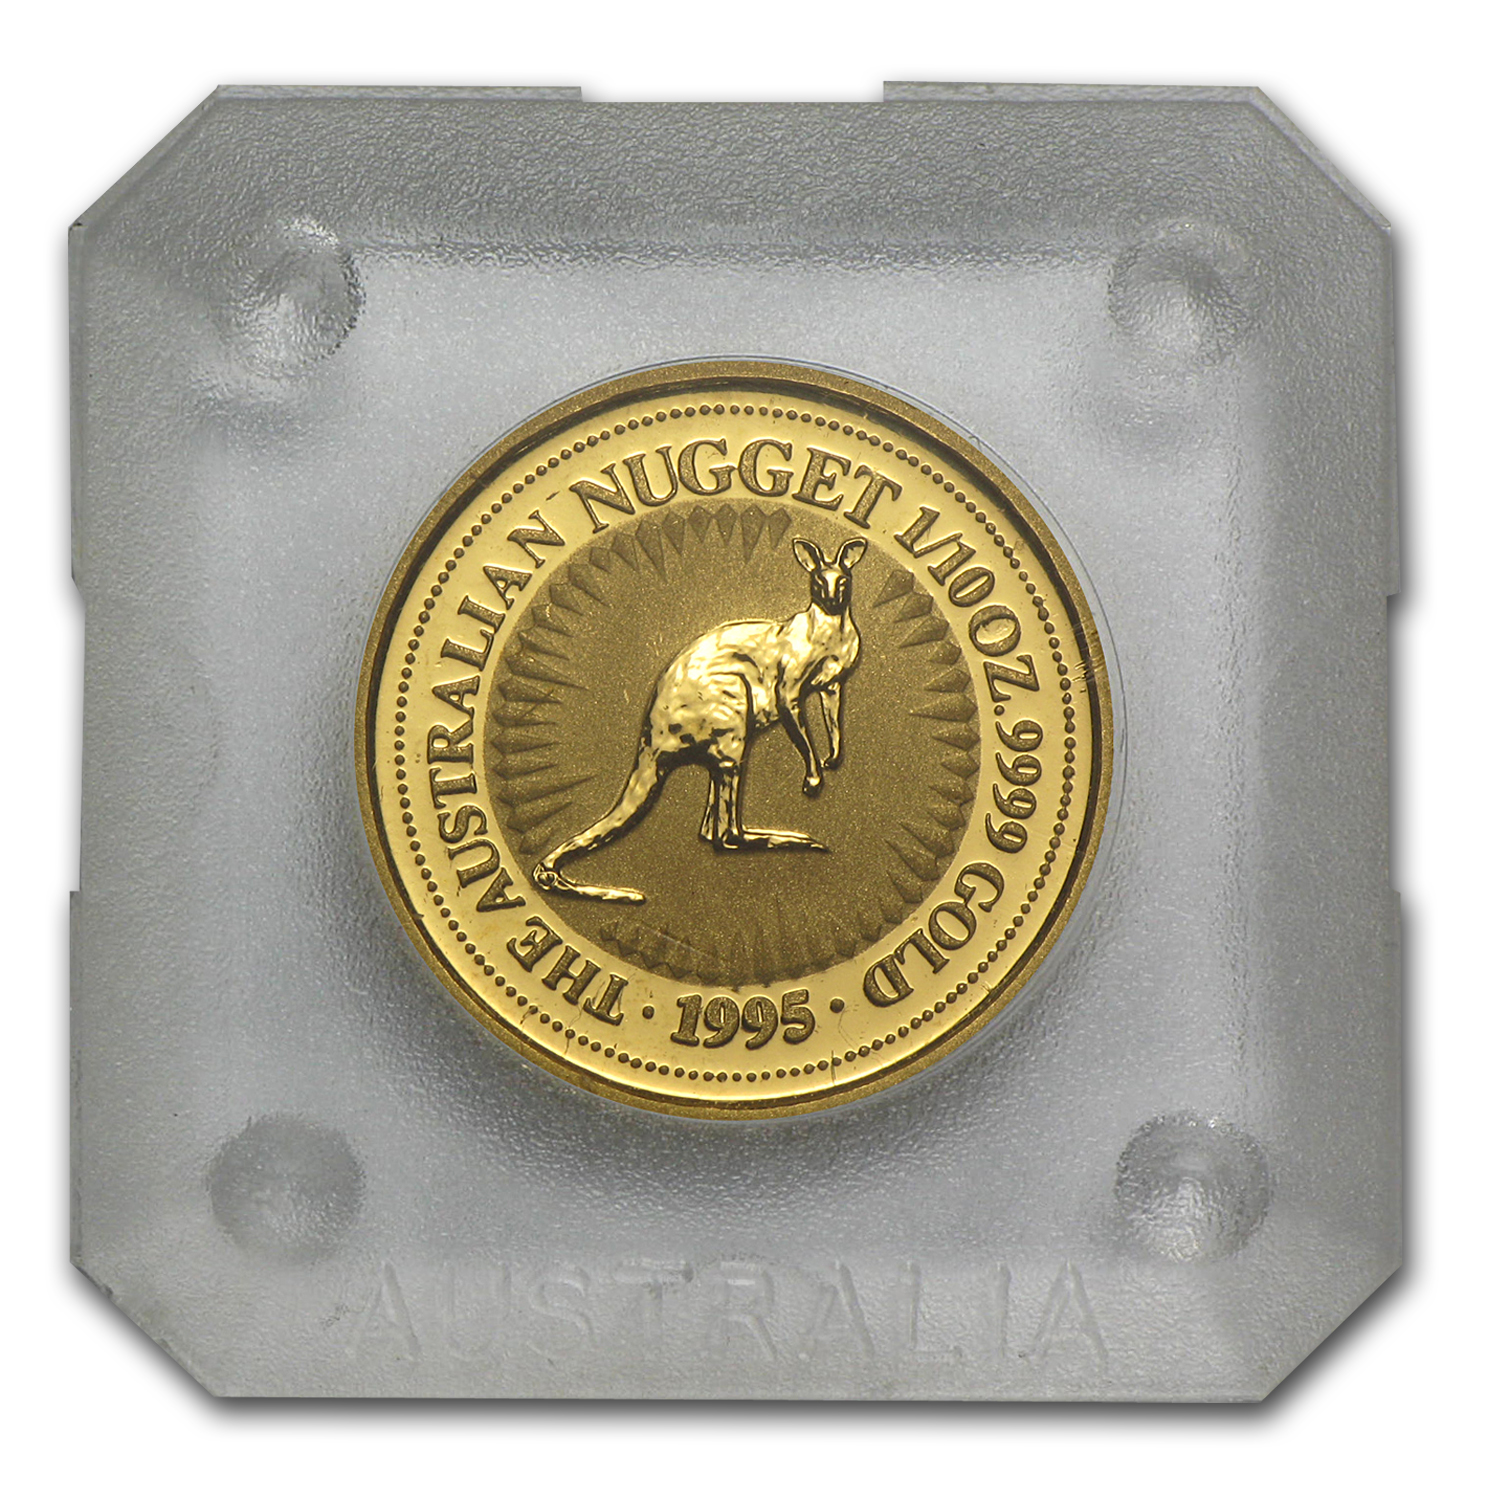 1995 1/10 oz Australian Gold Nugget